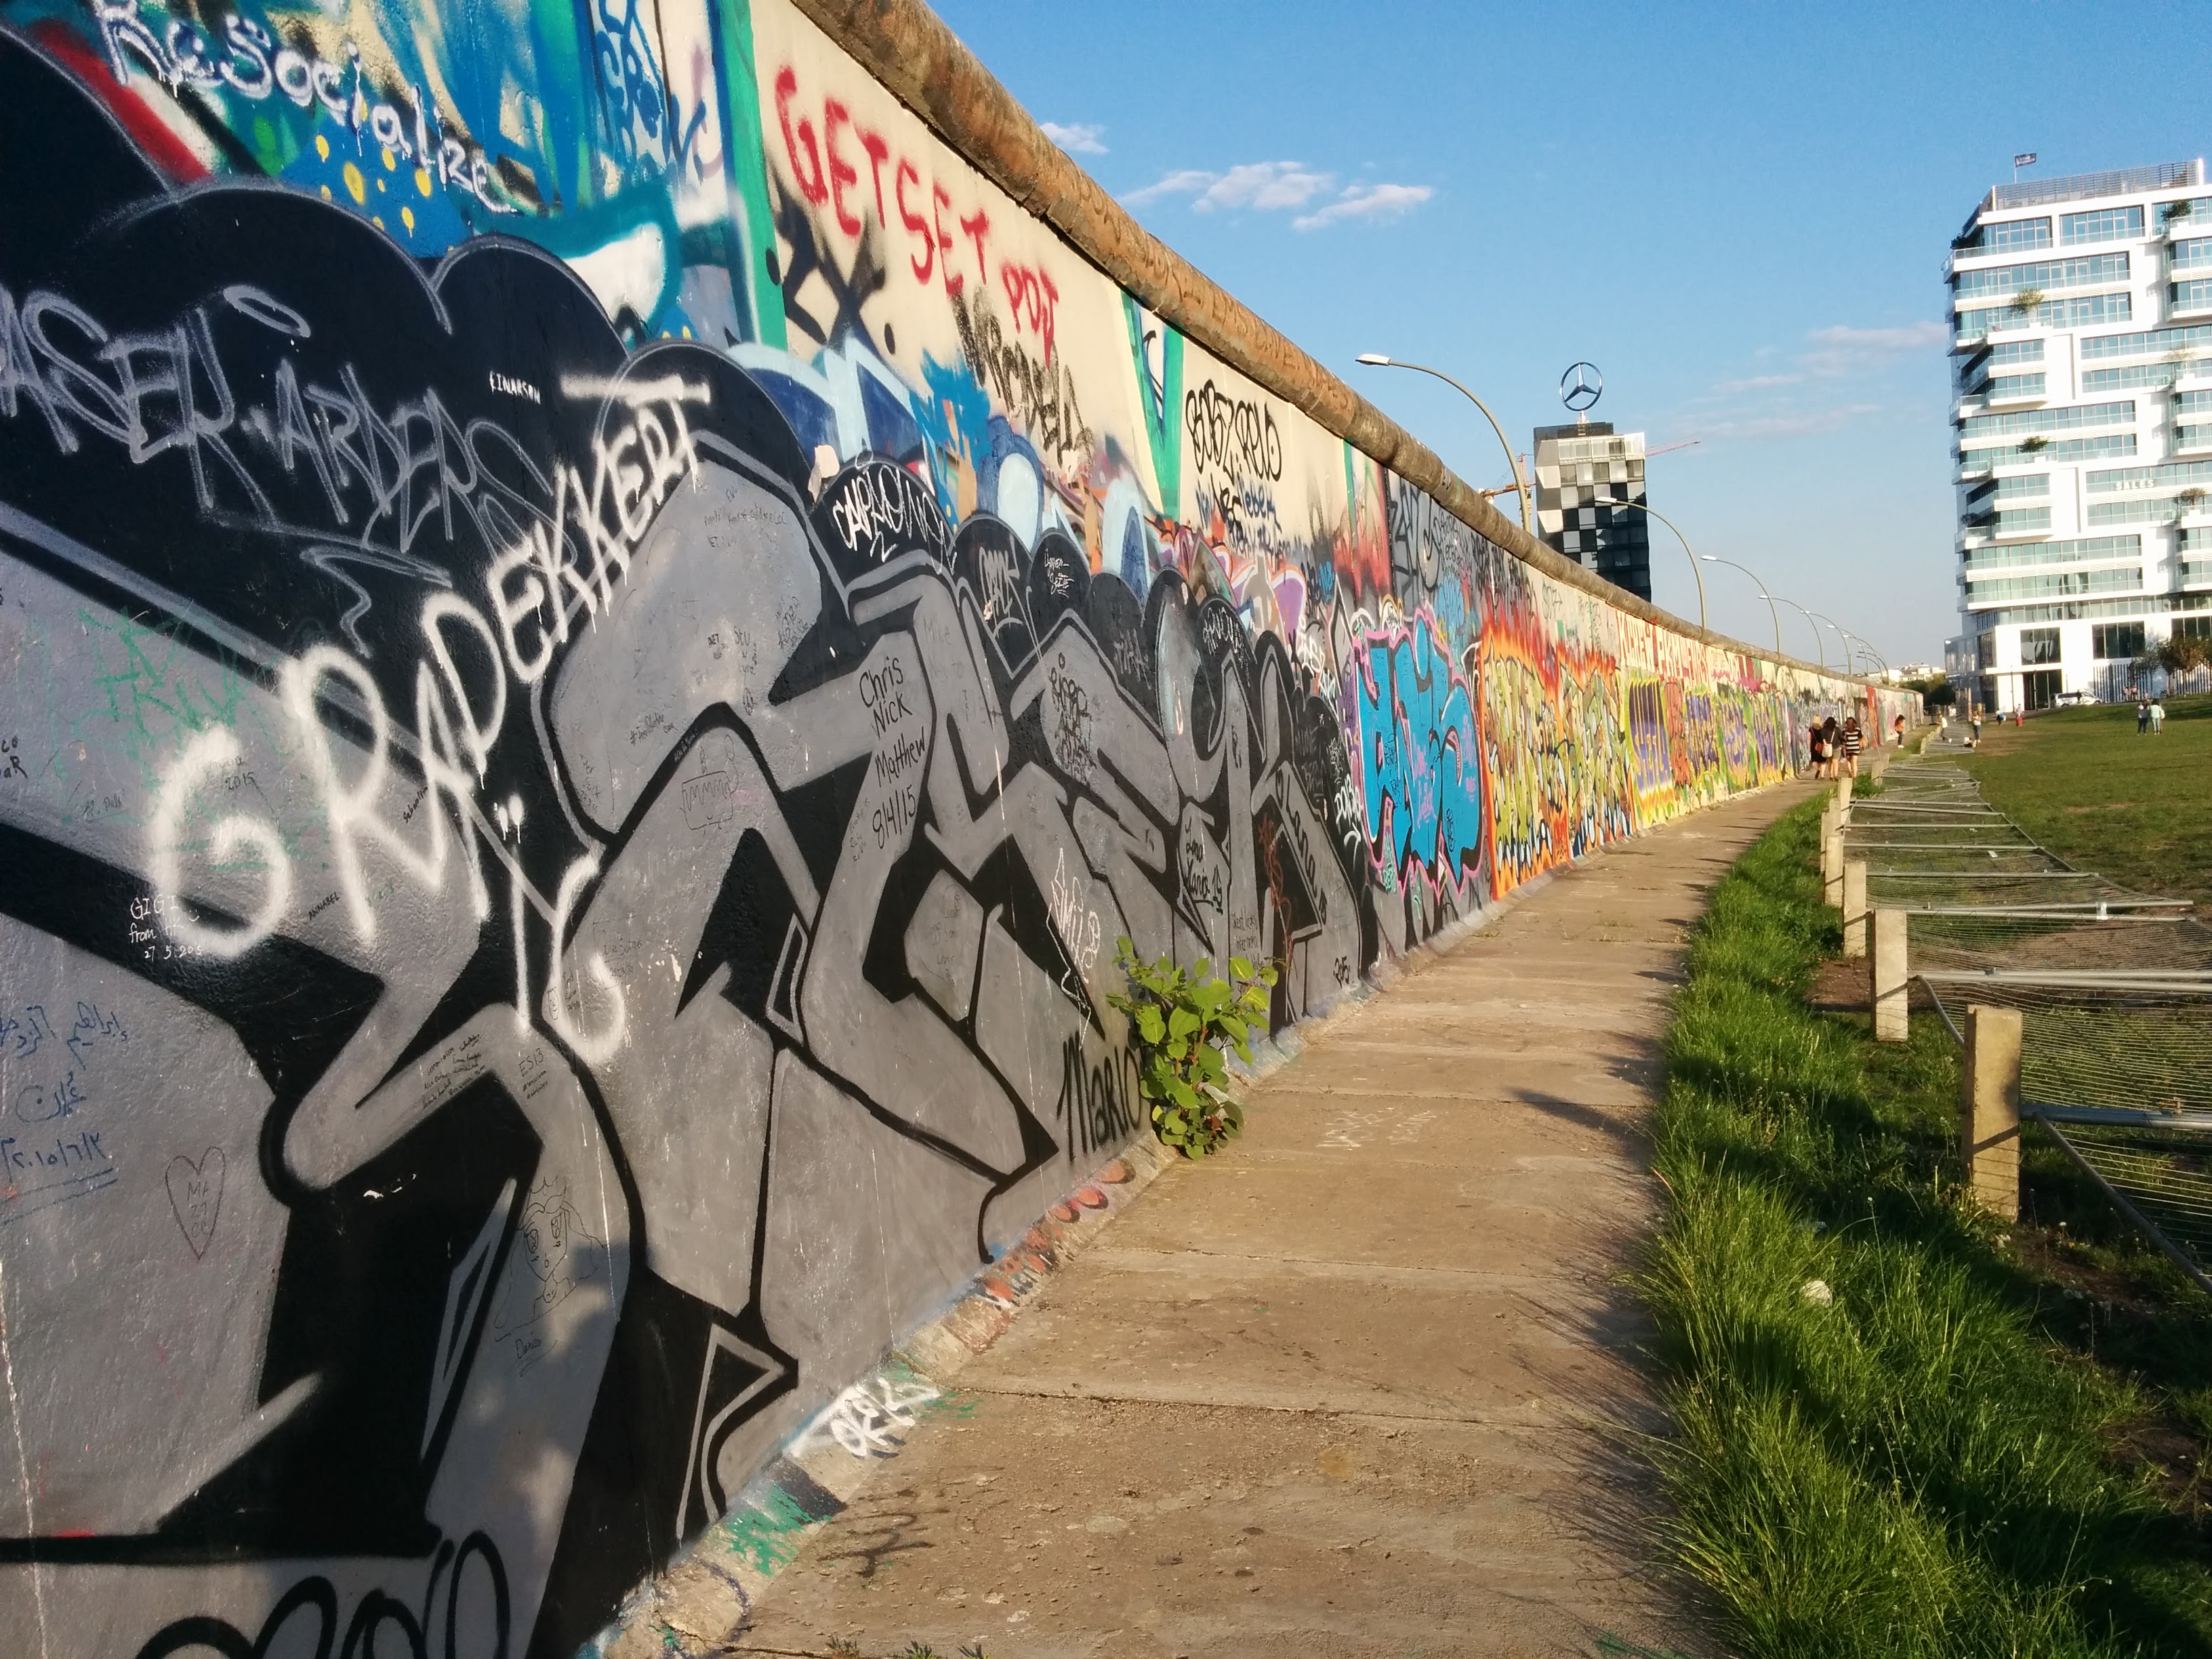 Images from the East Side Gallery